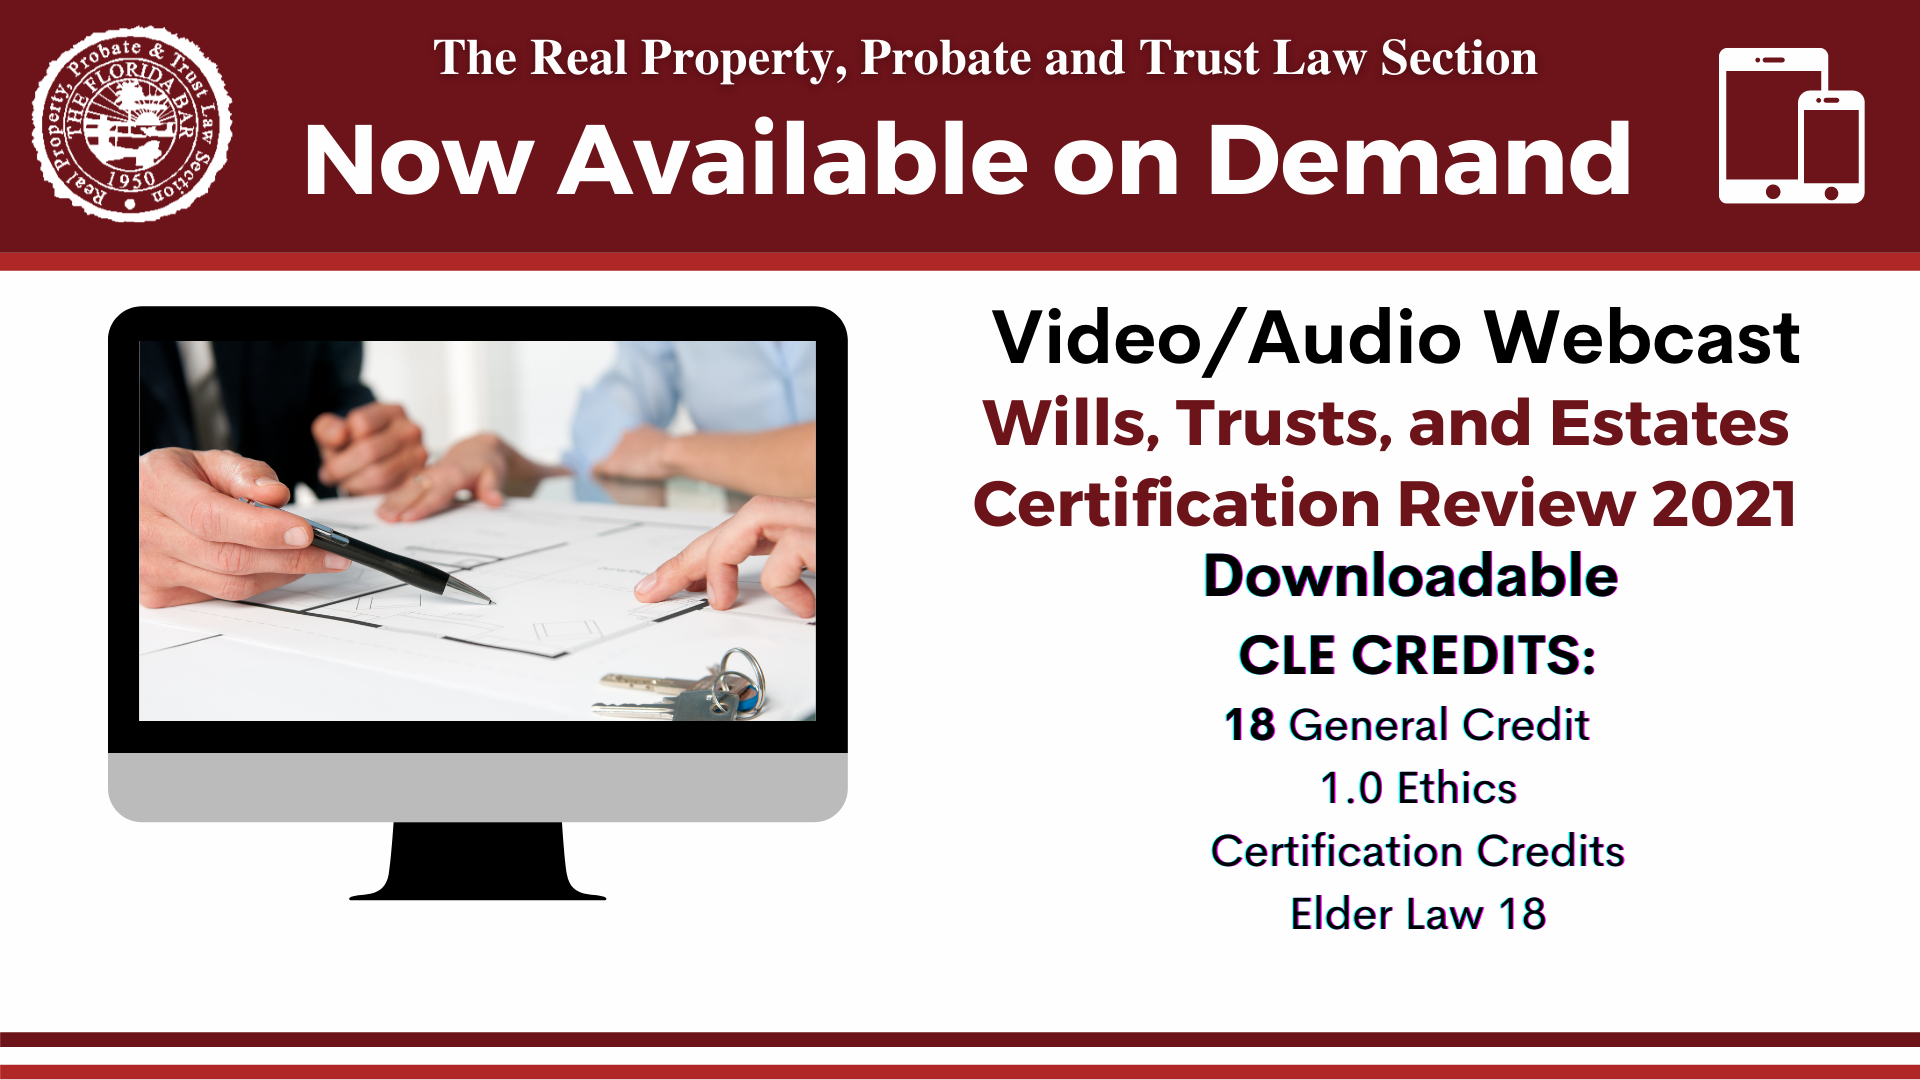 Wills, Trusts, and Estates Certification Review Available On Demand